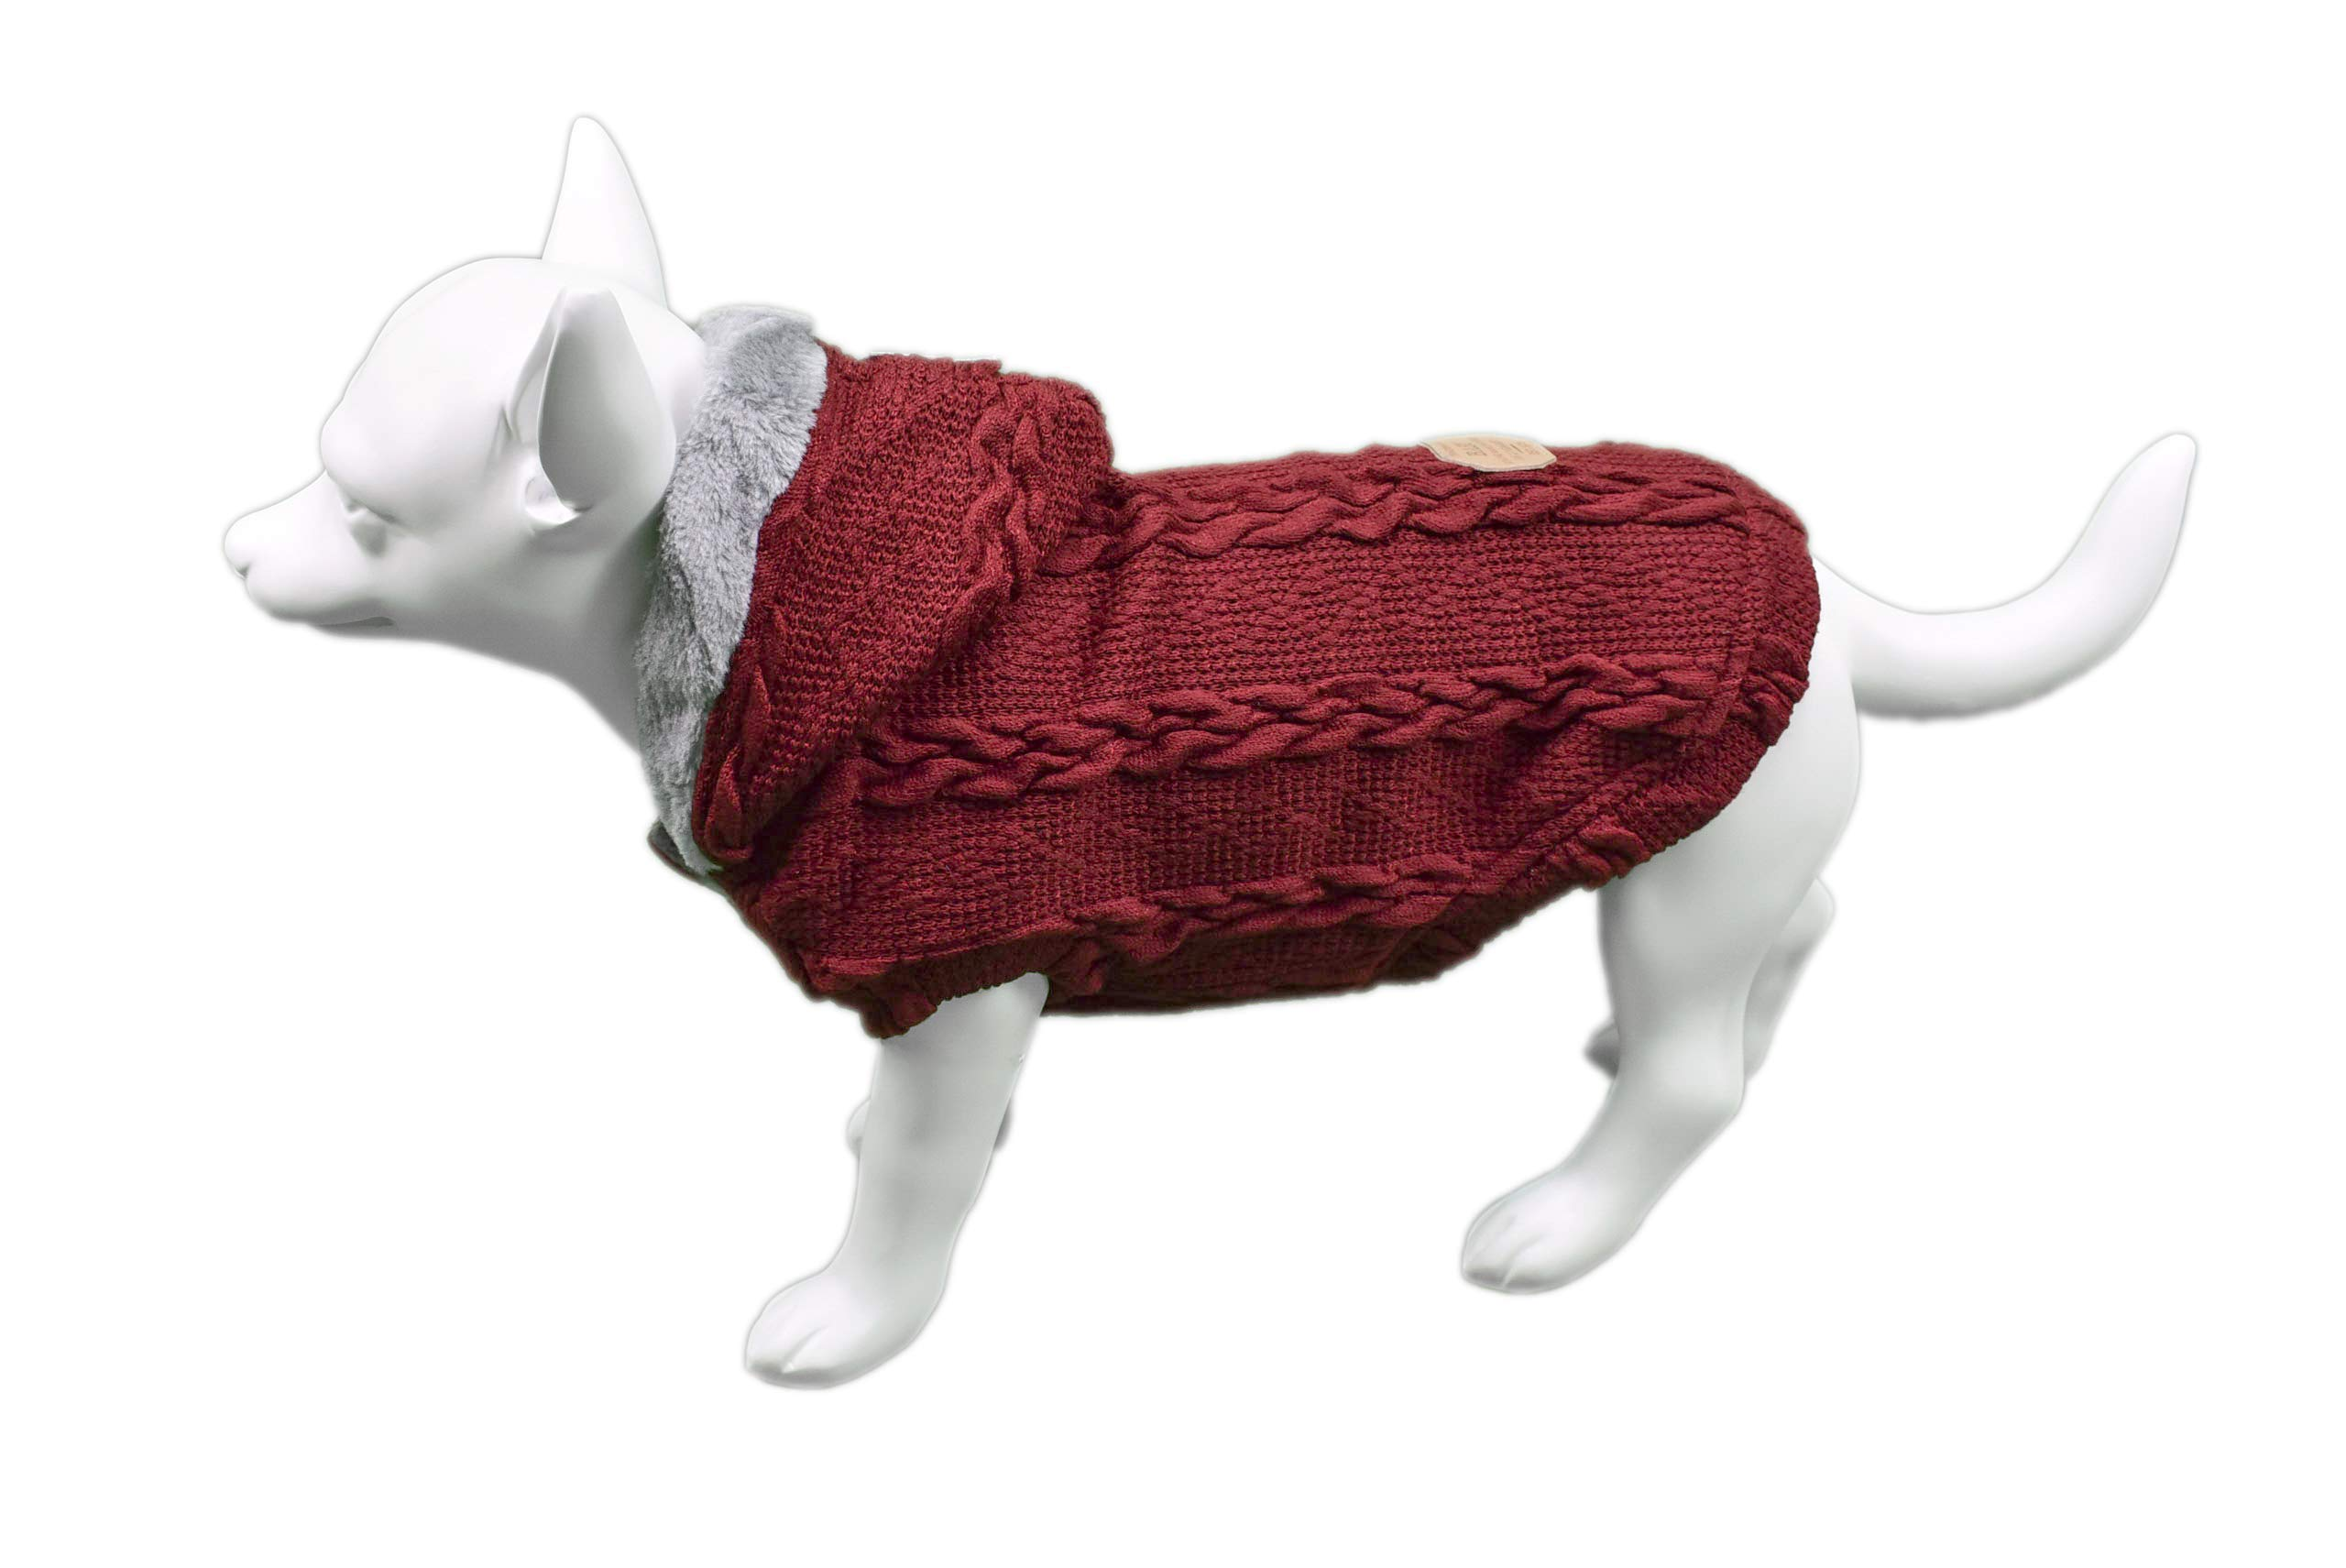 Furzy Fleece-Lined Cable Knit Sweater with Hood for Dogs (Small, Red)